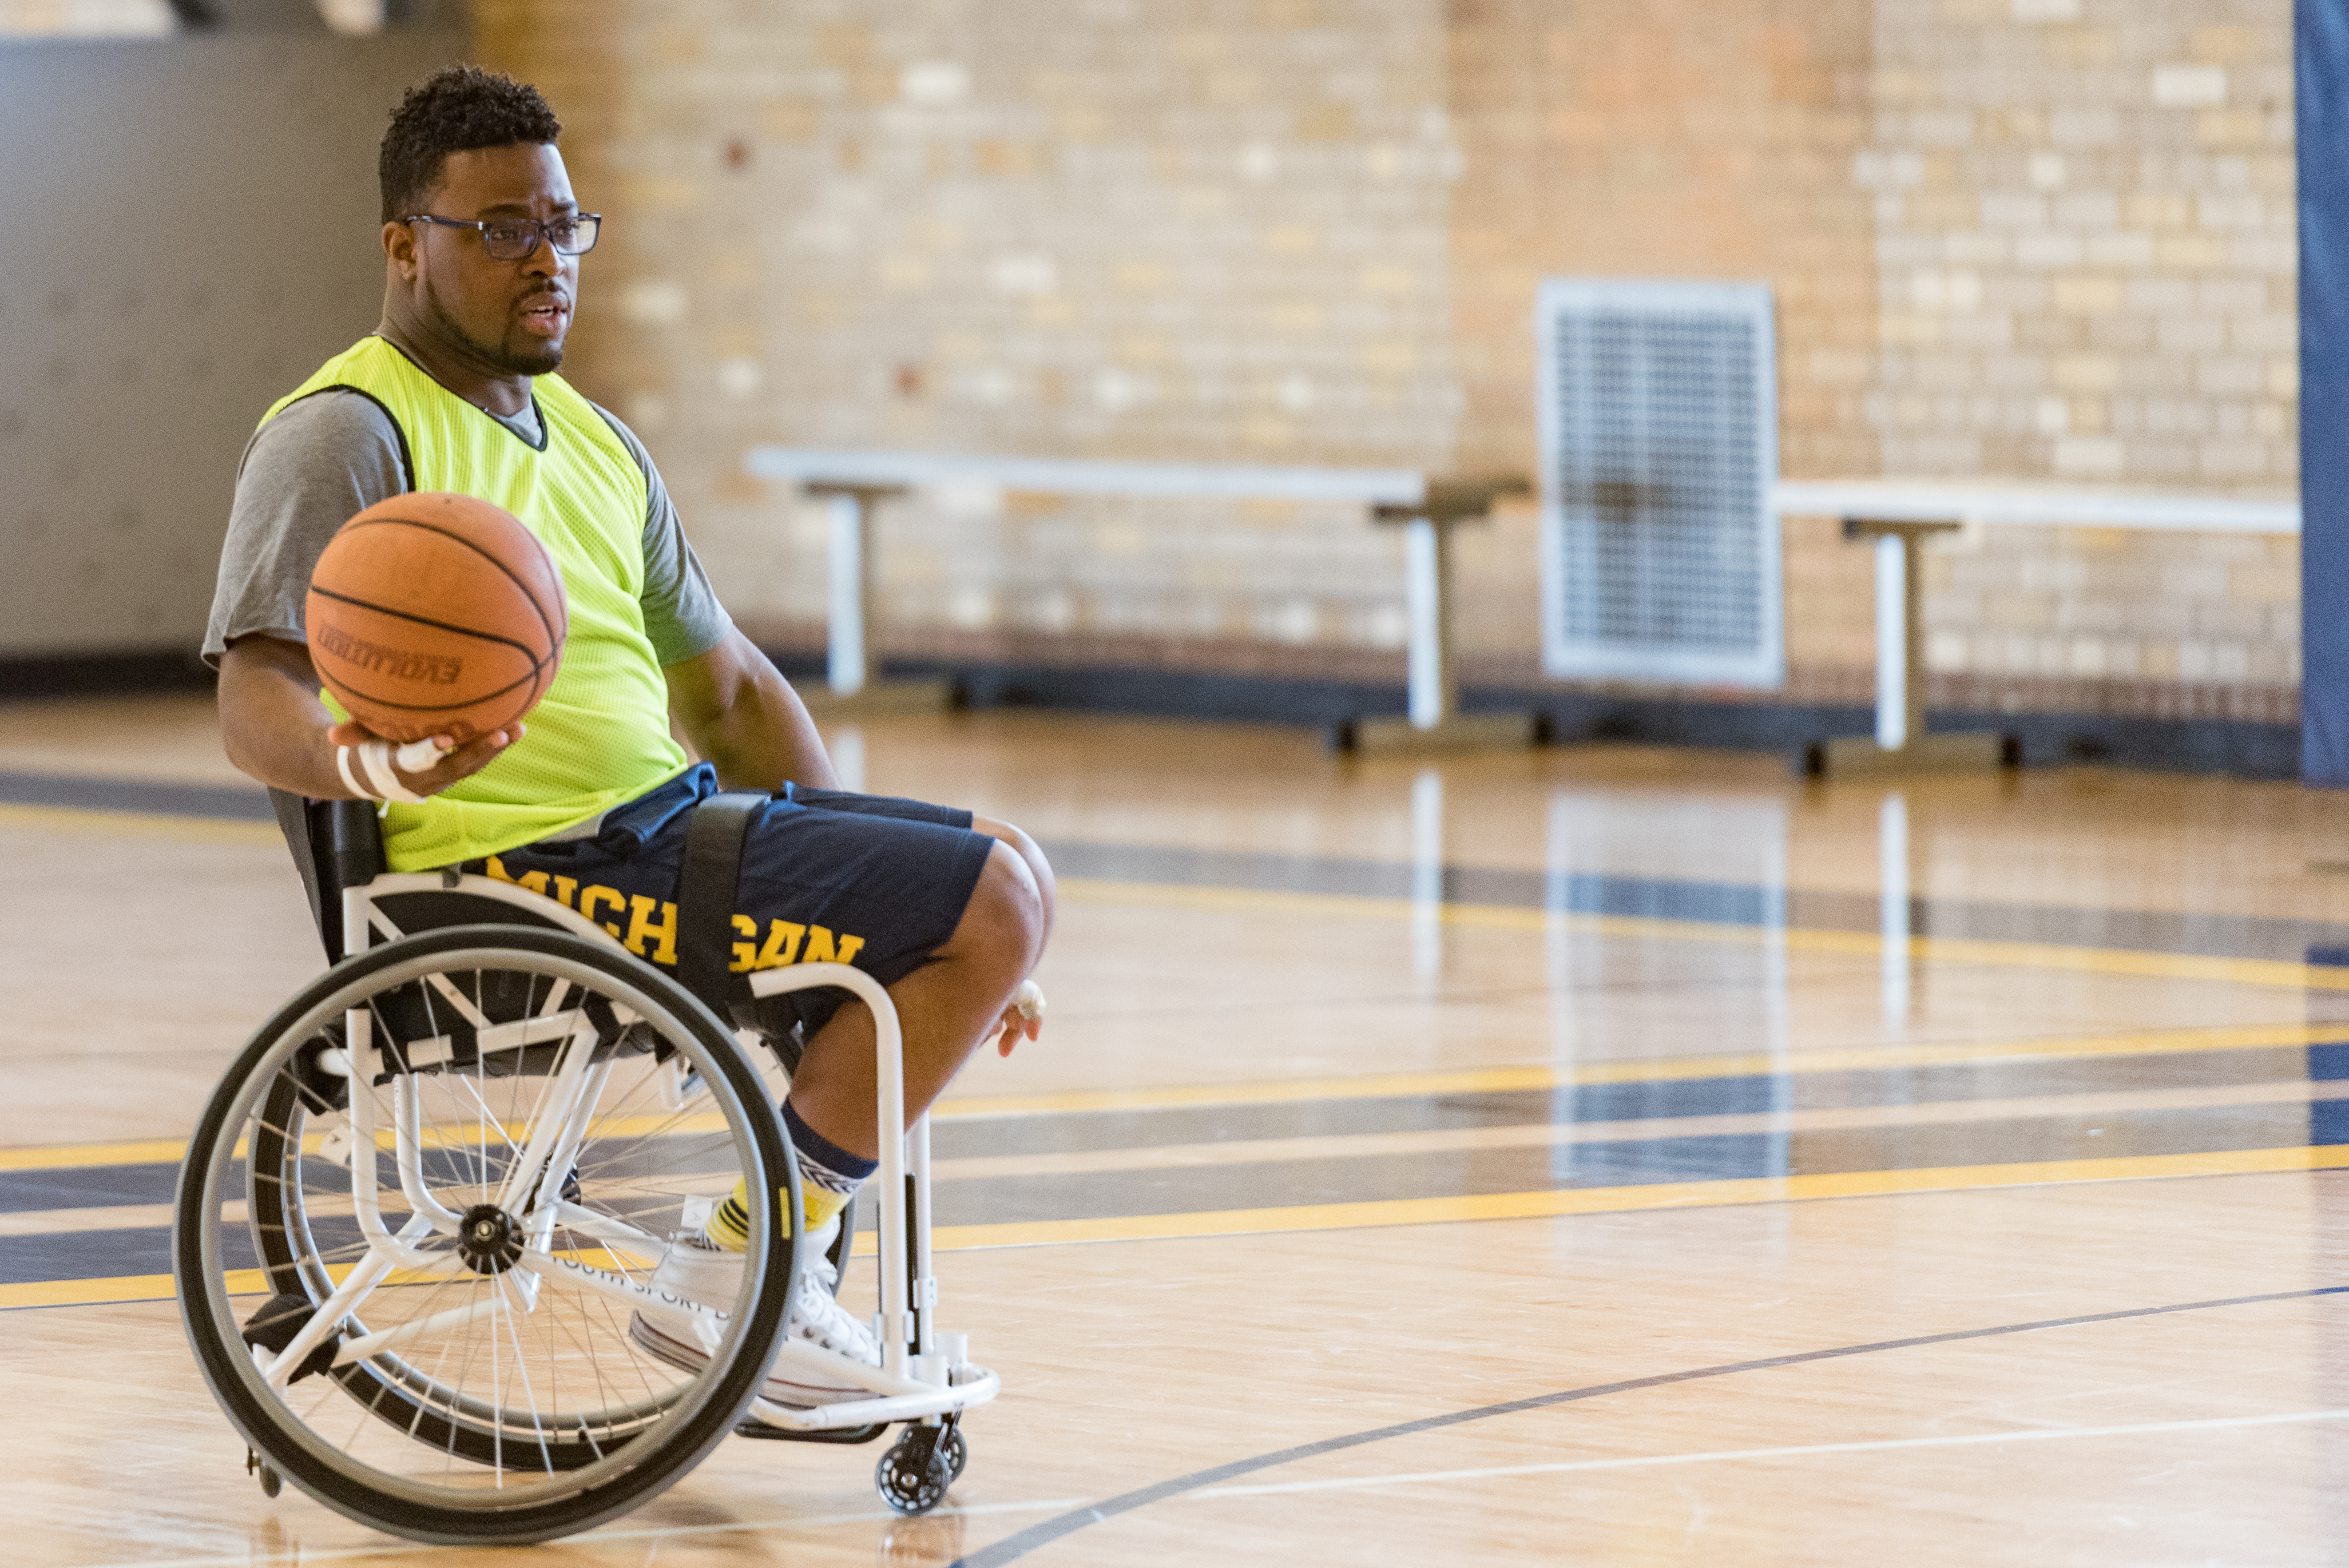 Dr. Feranmi Oklanmi sits in a sports wheel chair and holds a basketball in one hand. He is on a basketball court.